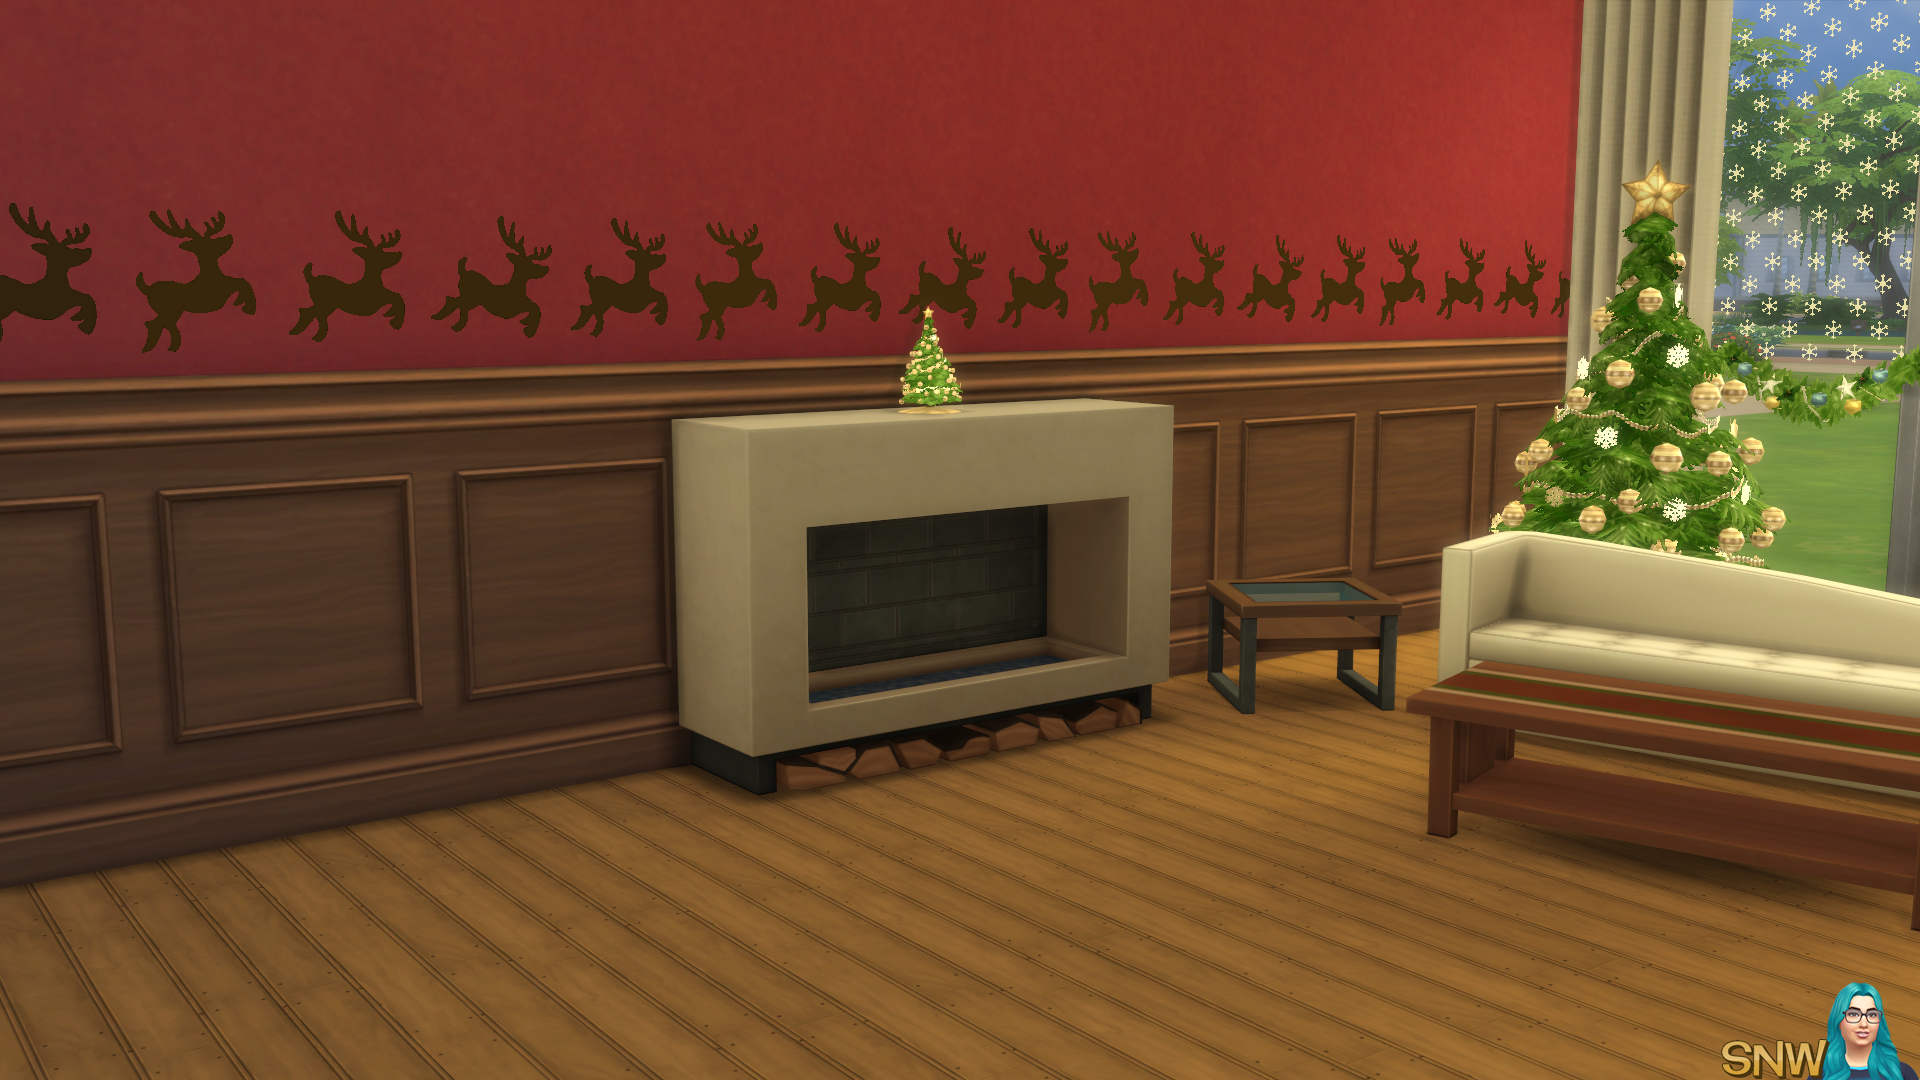 Christmas 2015 Decals And Borders Snw Simsnetwork Com